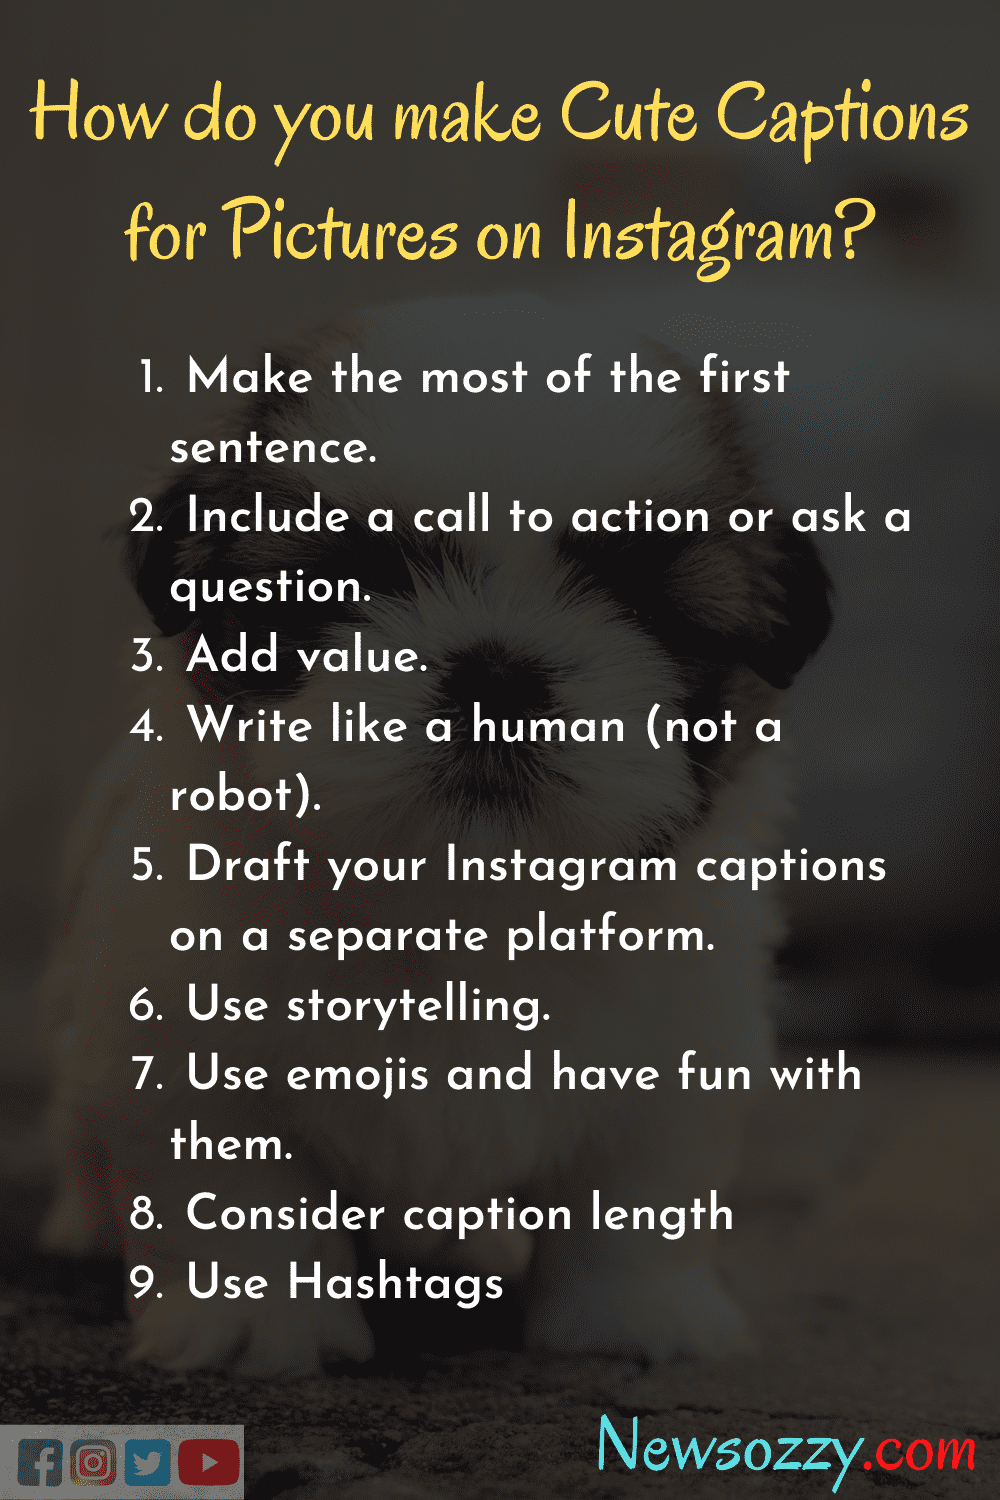 how to write cute captions for pictures on instagram